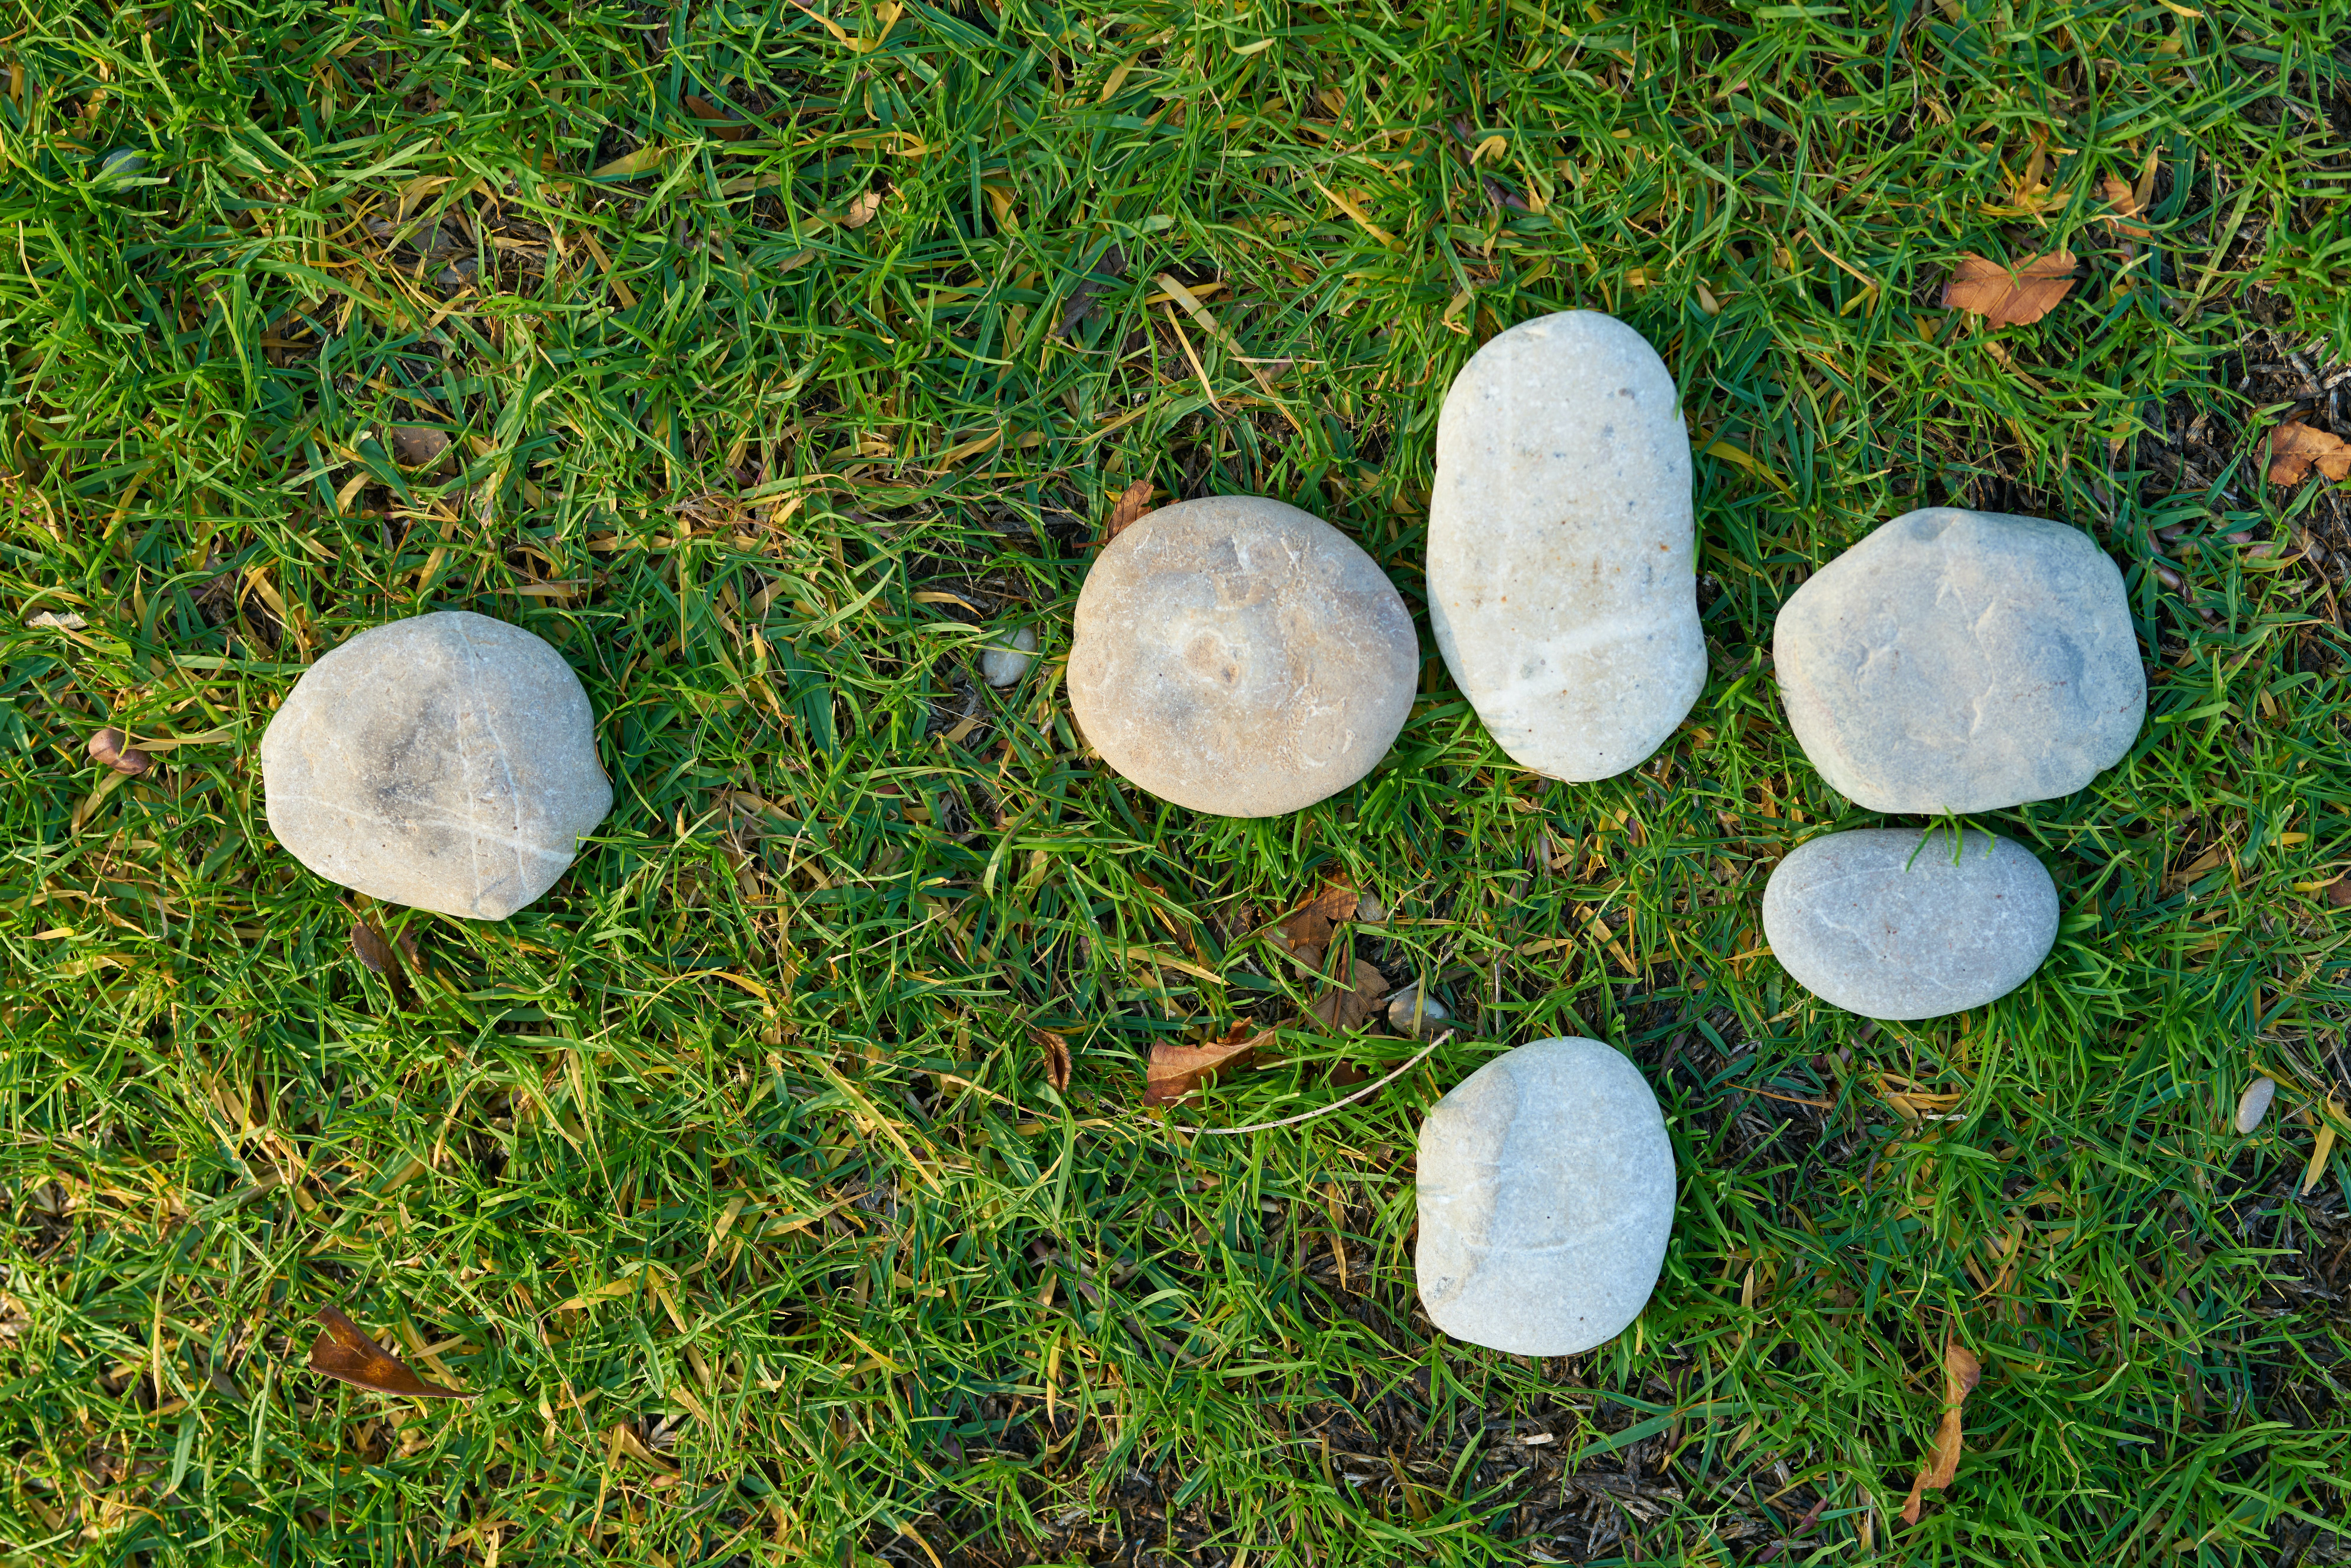 Six Gray Stone on Lawn Grass